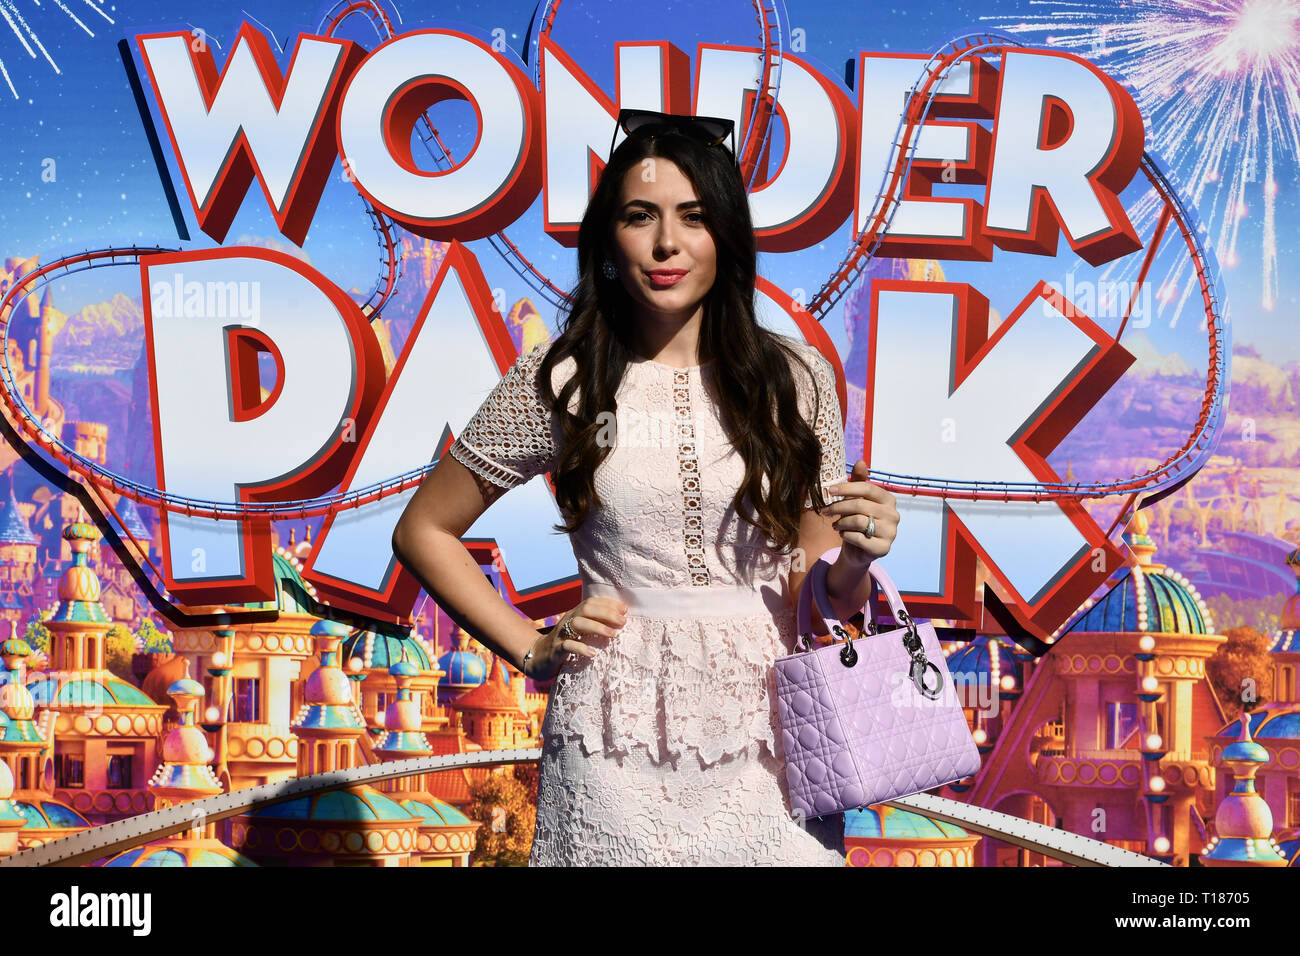 London, UK. 24th Mar 2019. WONDER PARK Gala Screening at Vue, Leicester Square, London on 24 March 2019, London, UK. Credit: Picture Capital/Alamy Live News Stock Photo